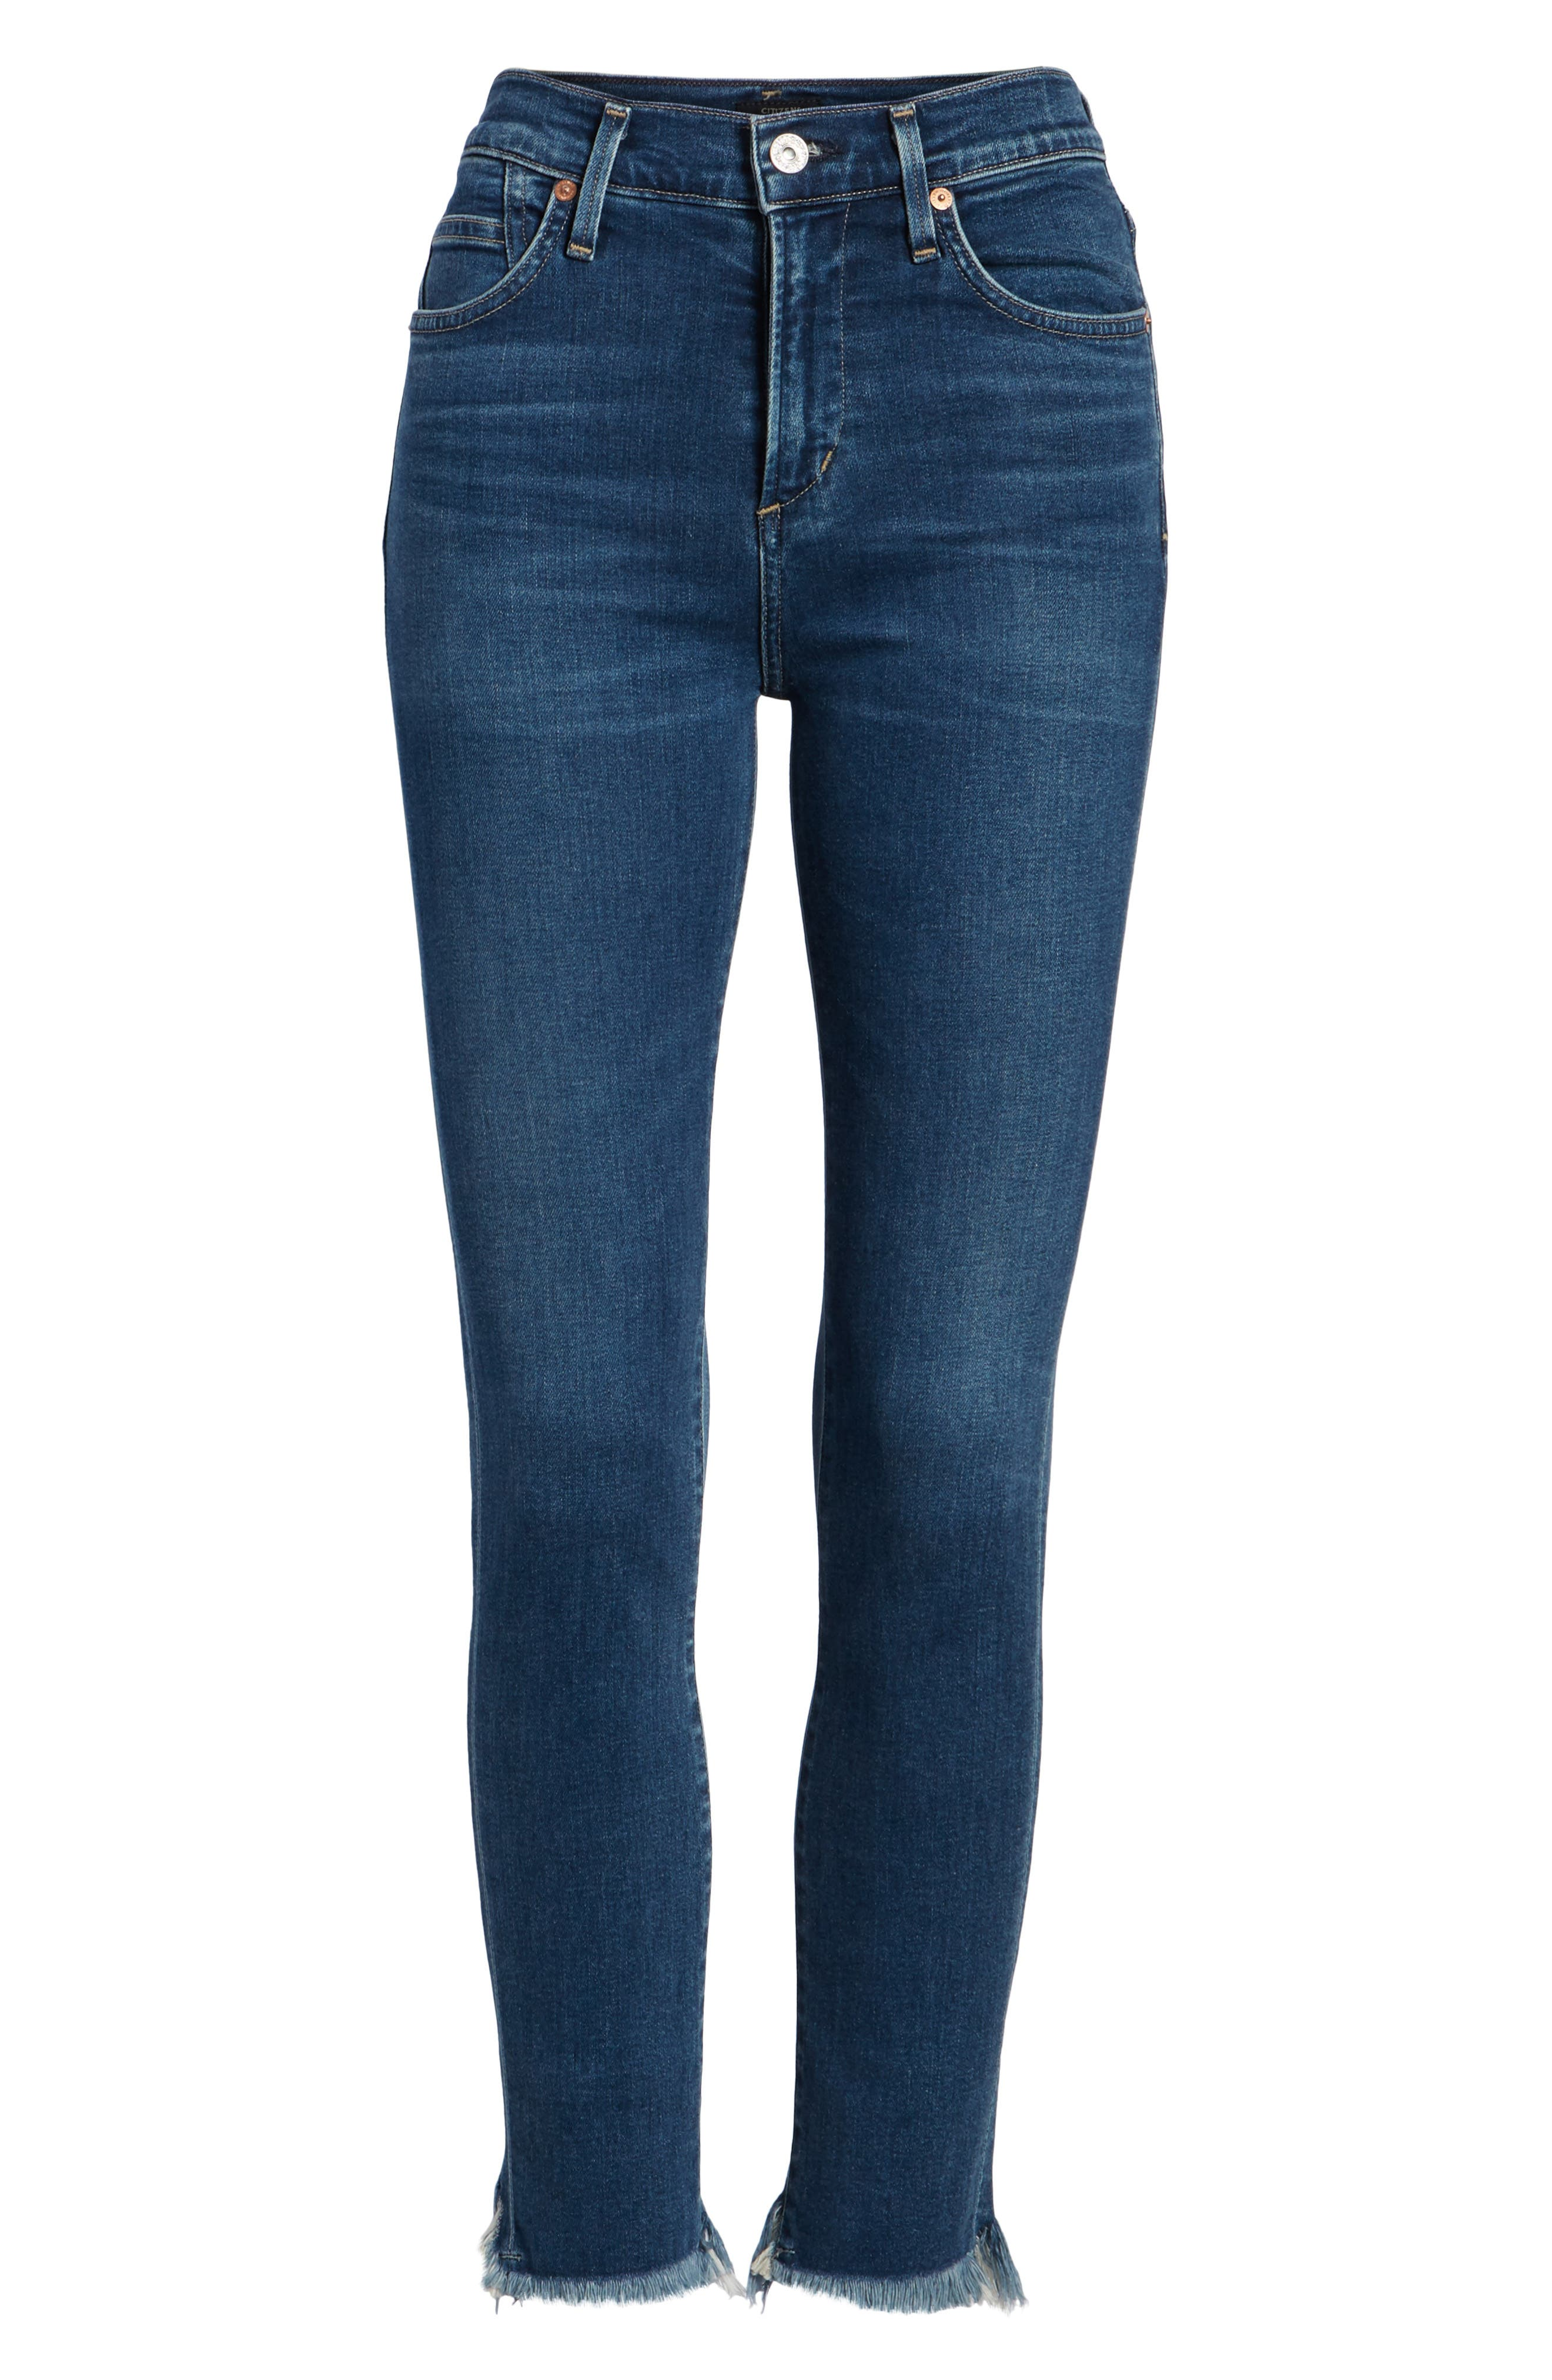 CITIZENS OF HUMANITY, Rocket High Waist Crop Skinny Jeans, Alternate thumbnail 7, color, FREQUENCY